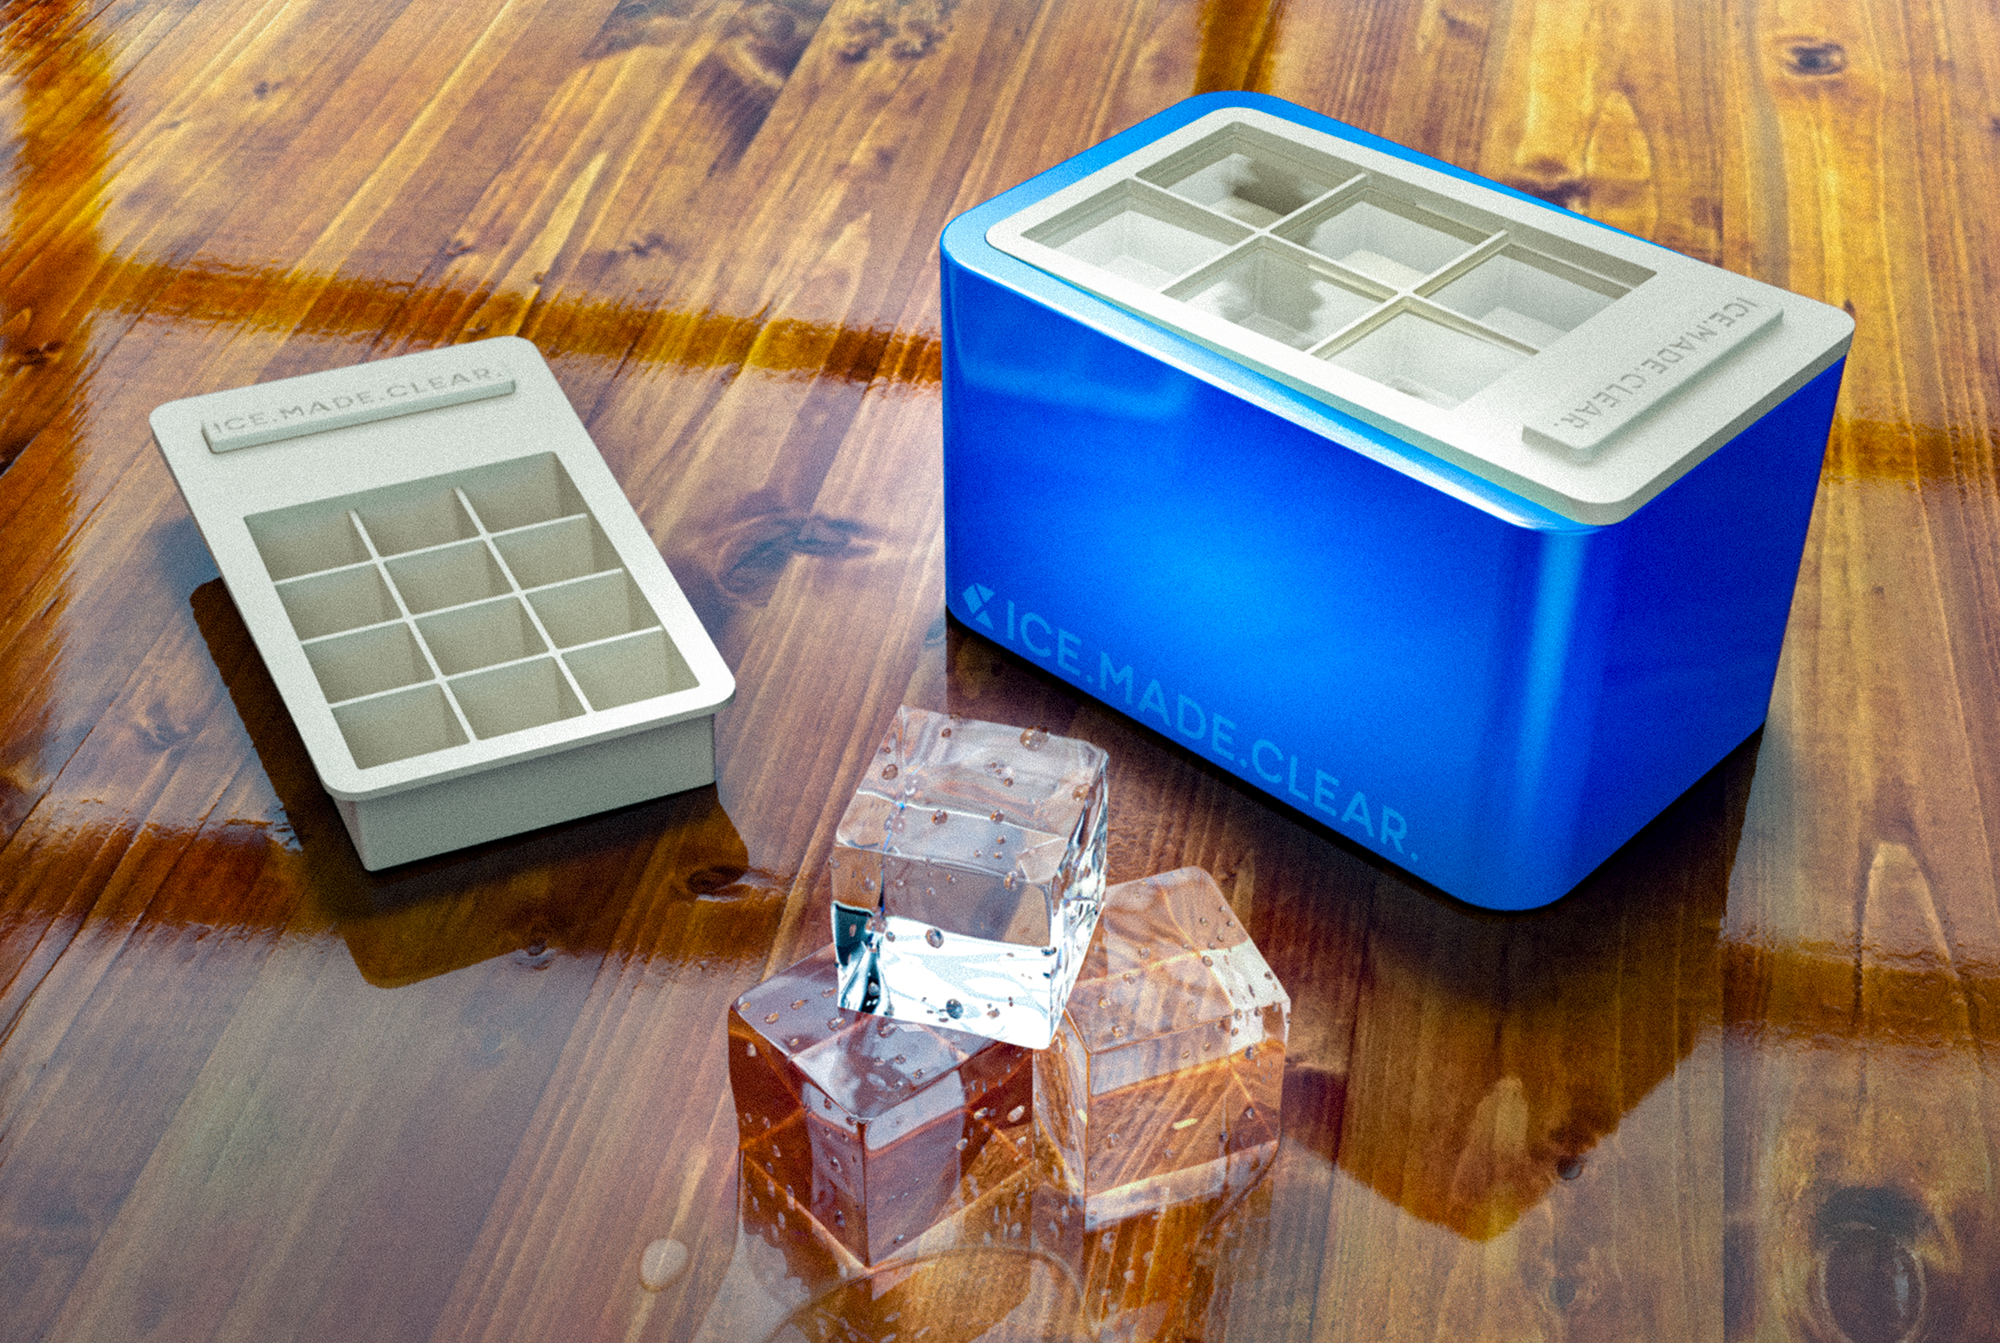 """The ICE.MADE.CLEAR.™ set comes complete with the freezing base and two interchangeable trays for making 2"""" enormous cubes and 1.25"""" jumbo cubes (for tall glasses)."""